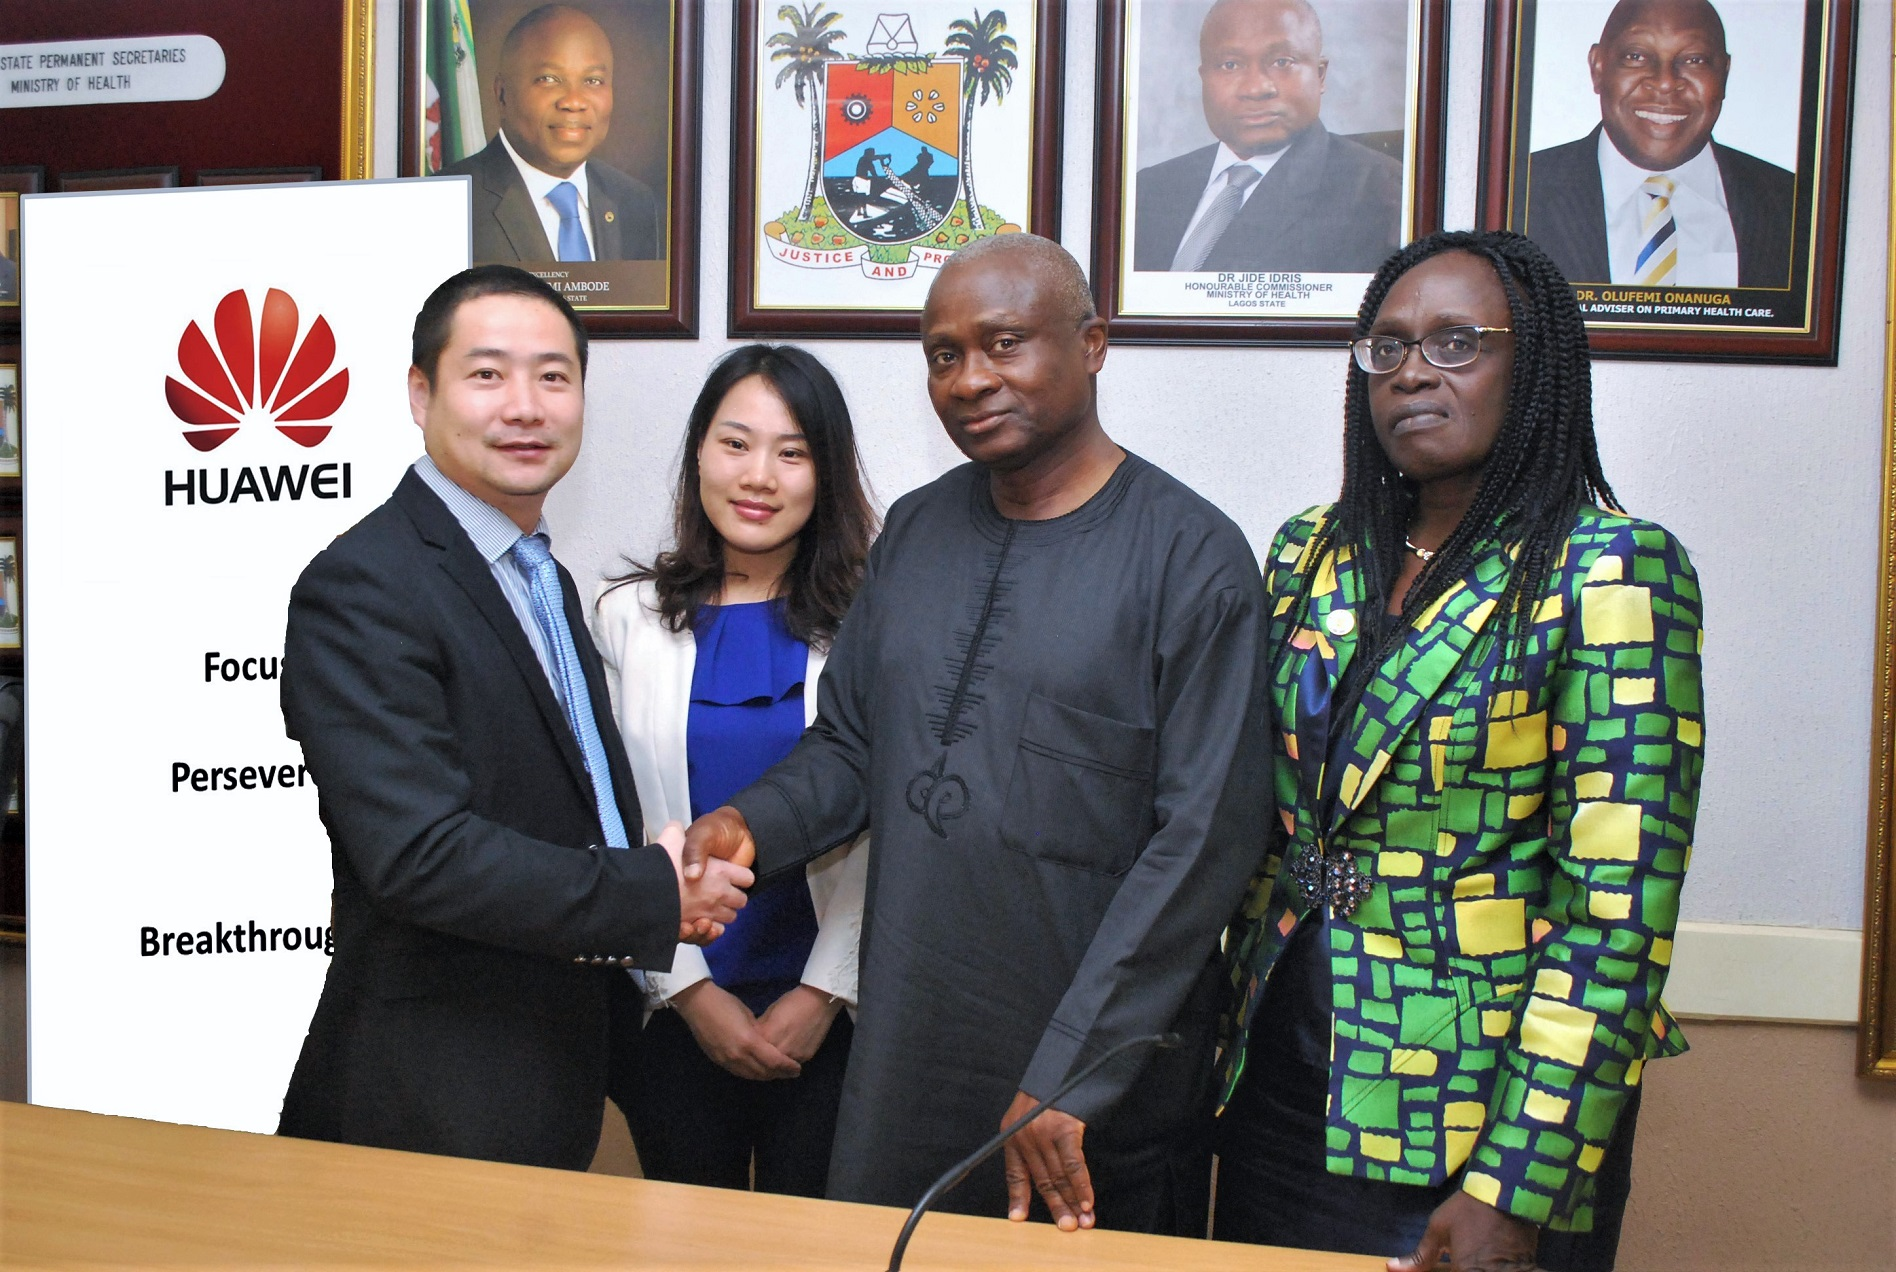 HUAWEI MEETS HEALTH COMMISSIONER